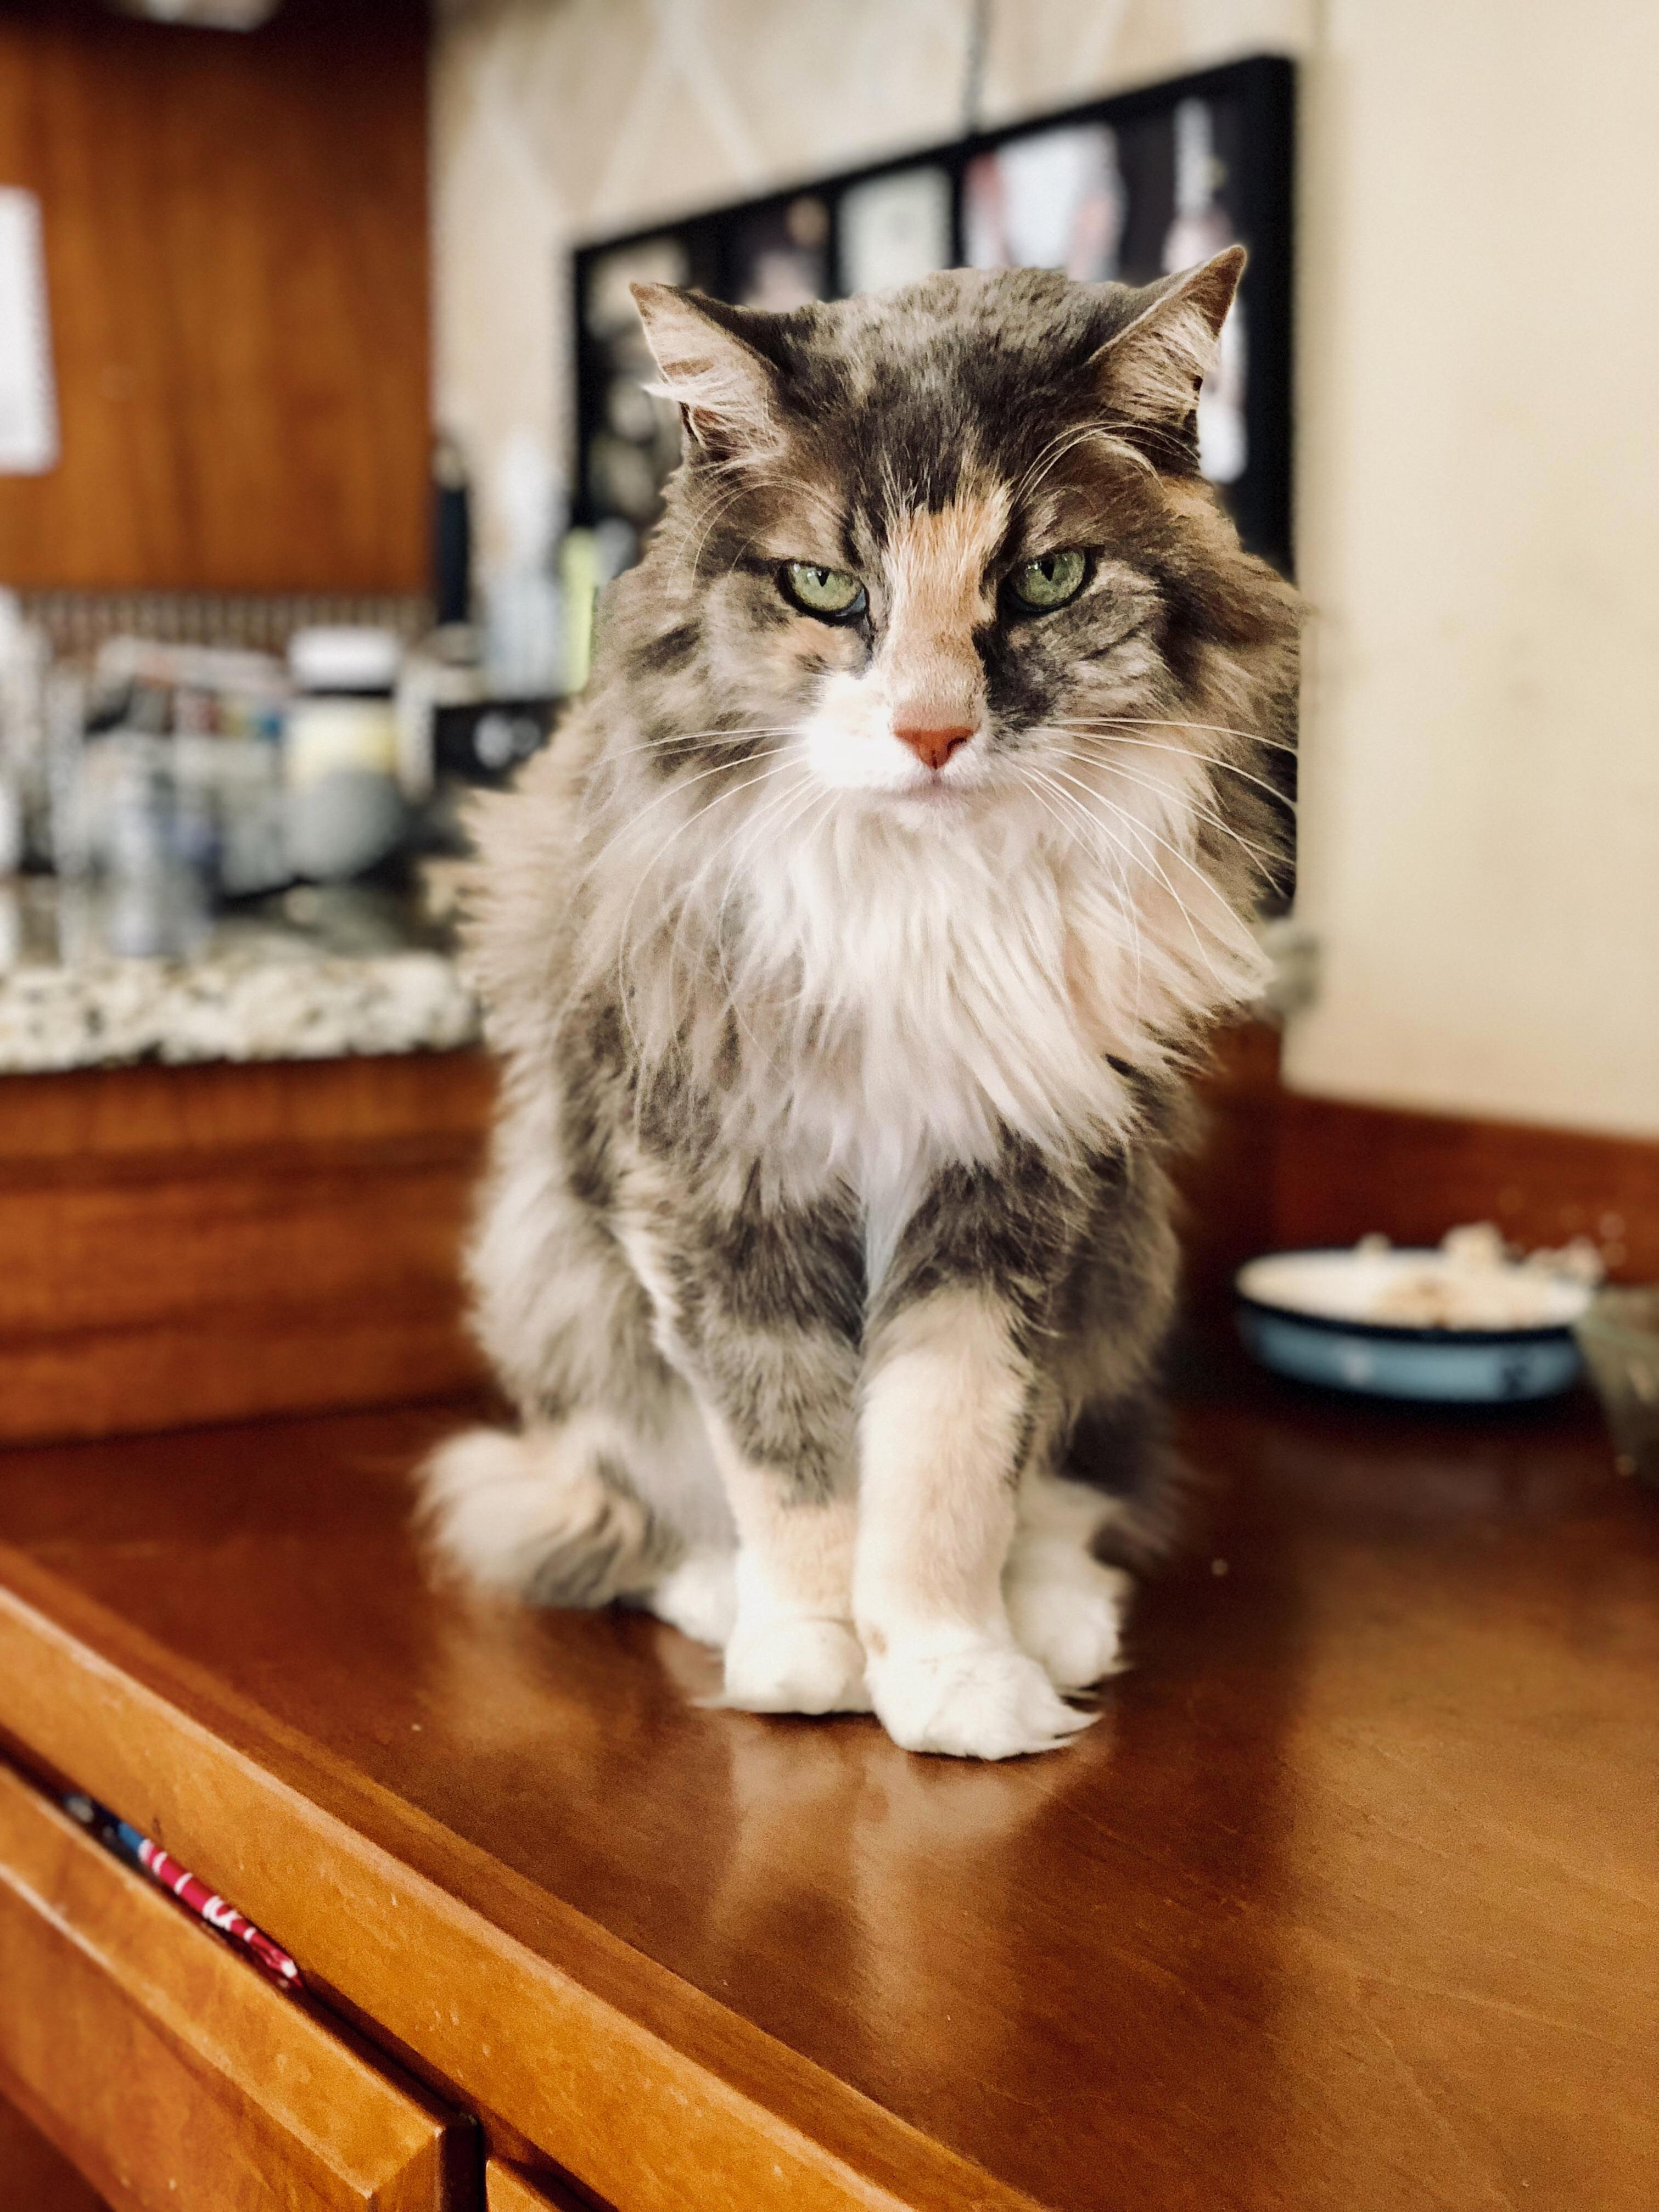 My friends 20 year old girl, beautiful as ever.